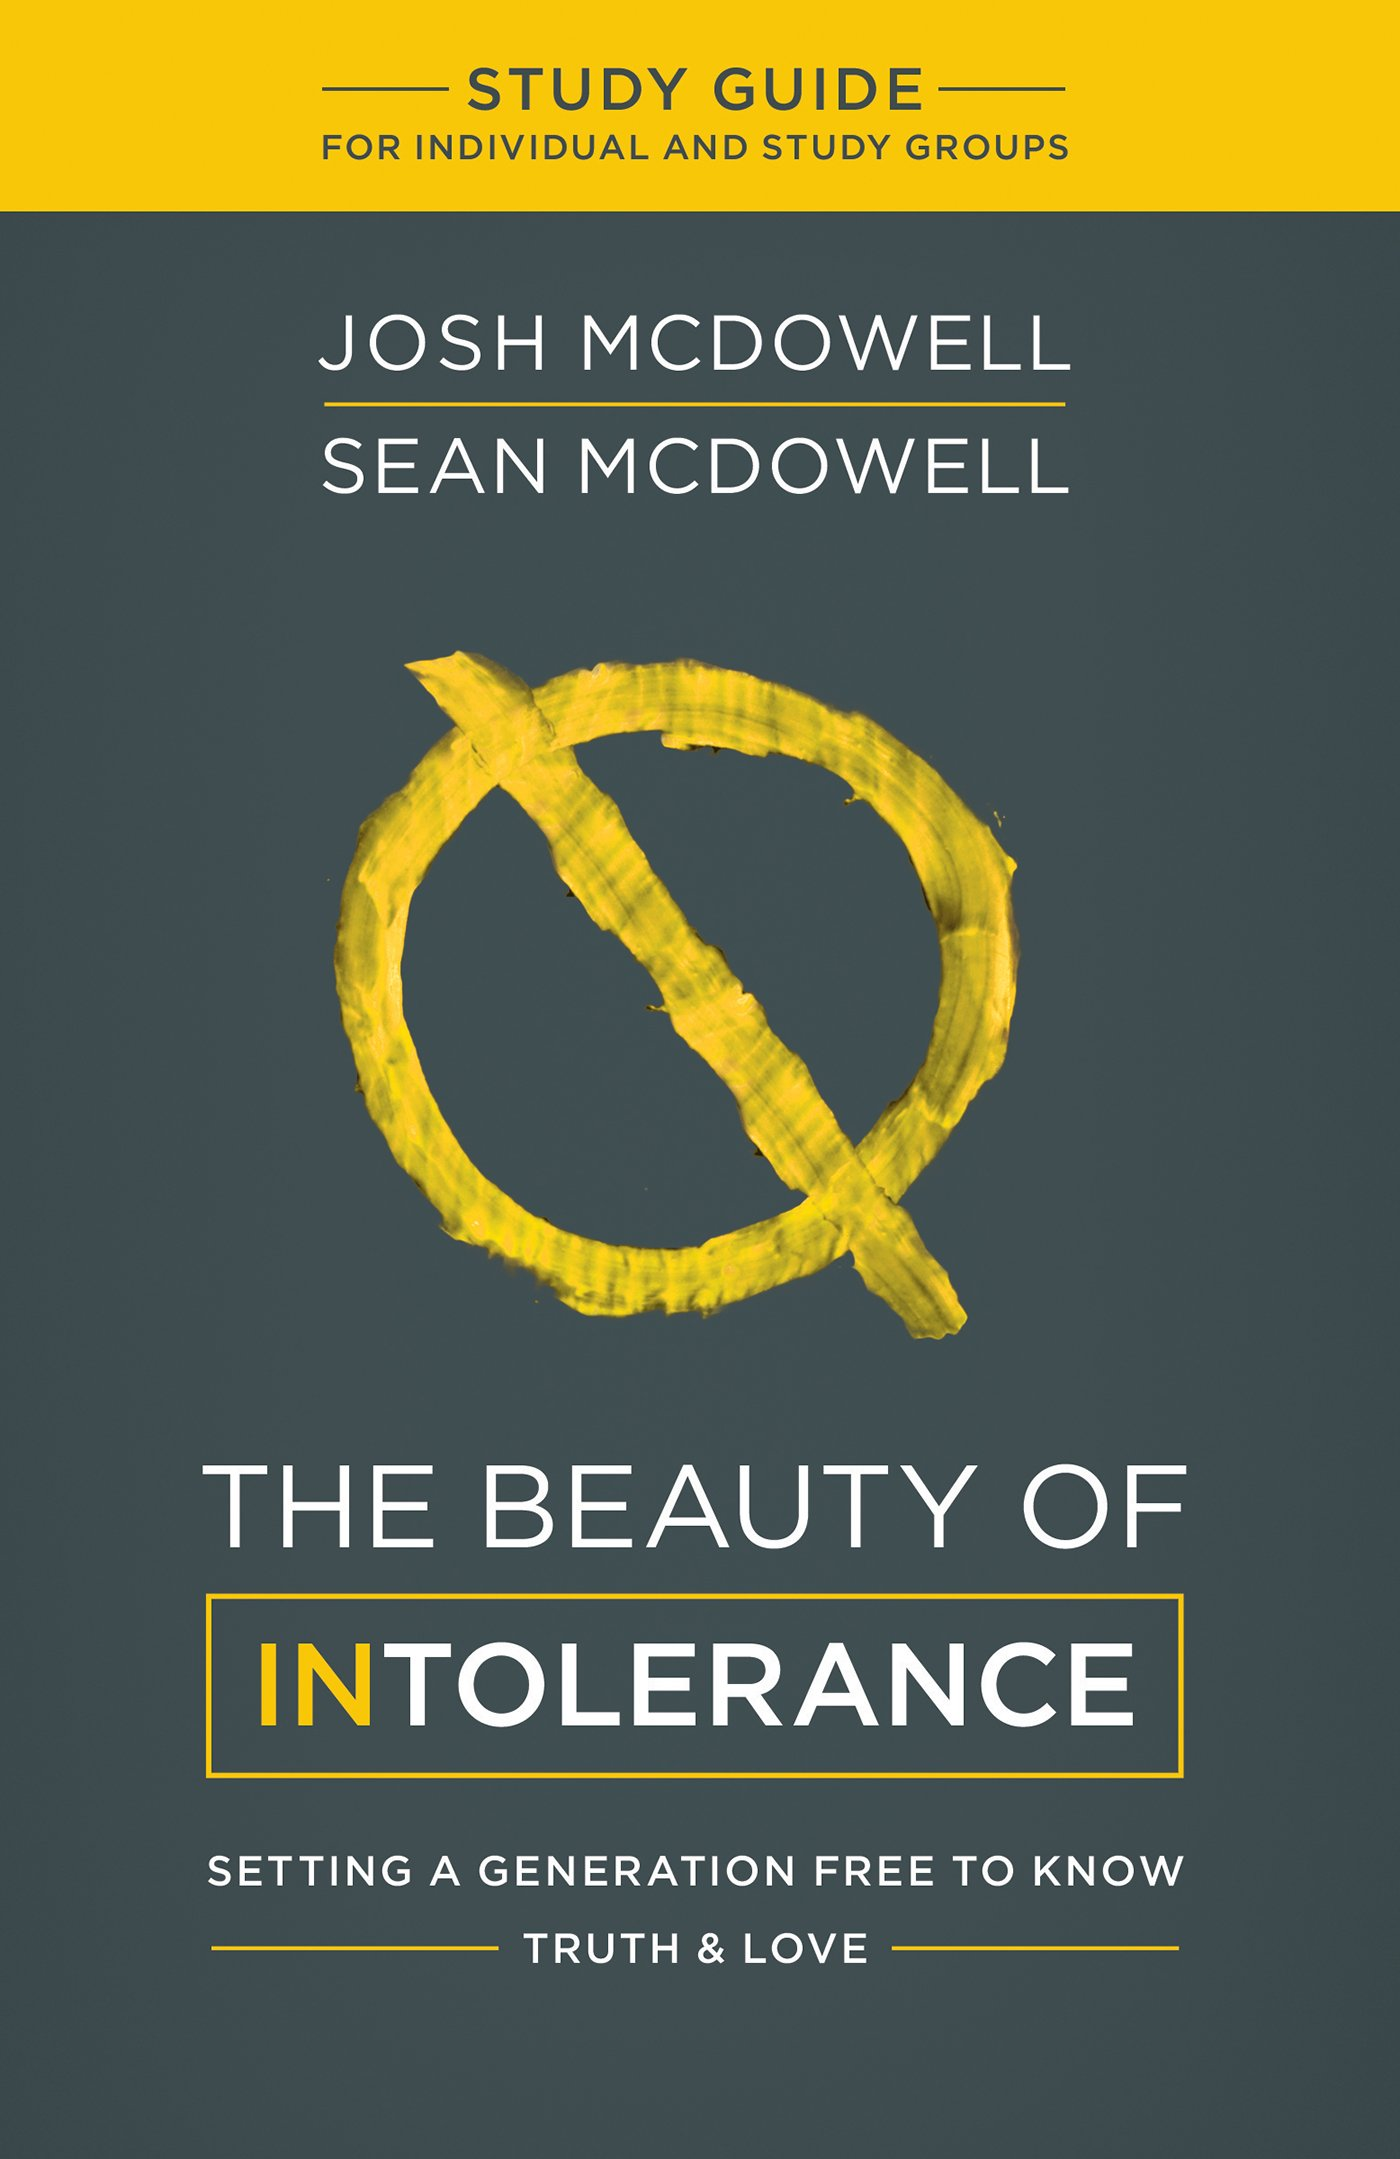 Download The Beauty of Intolerance Study Guide pdf epub